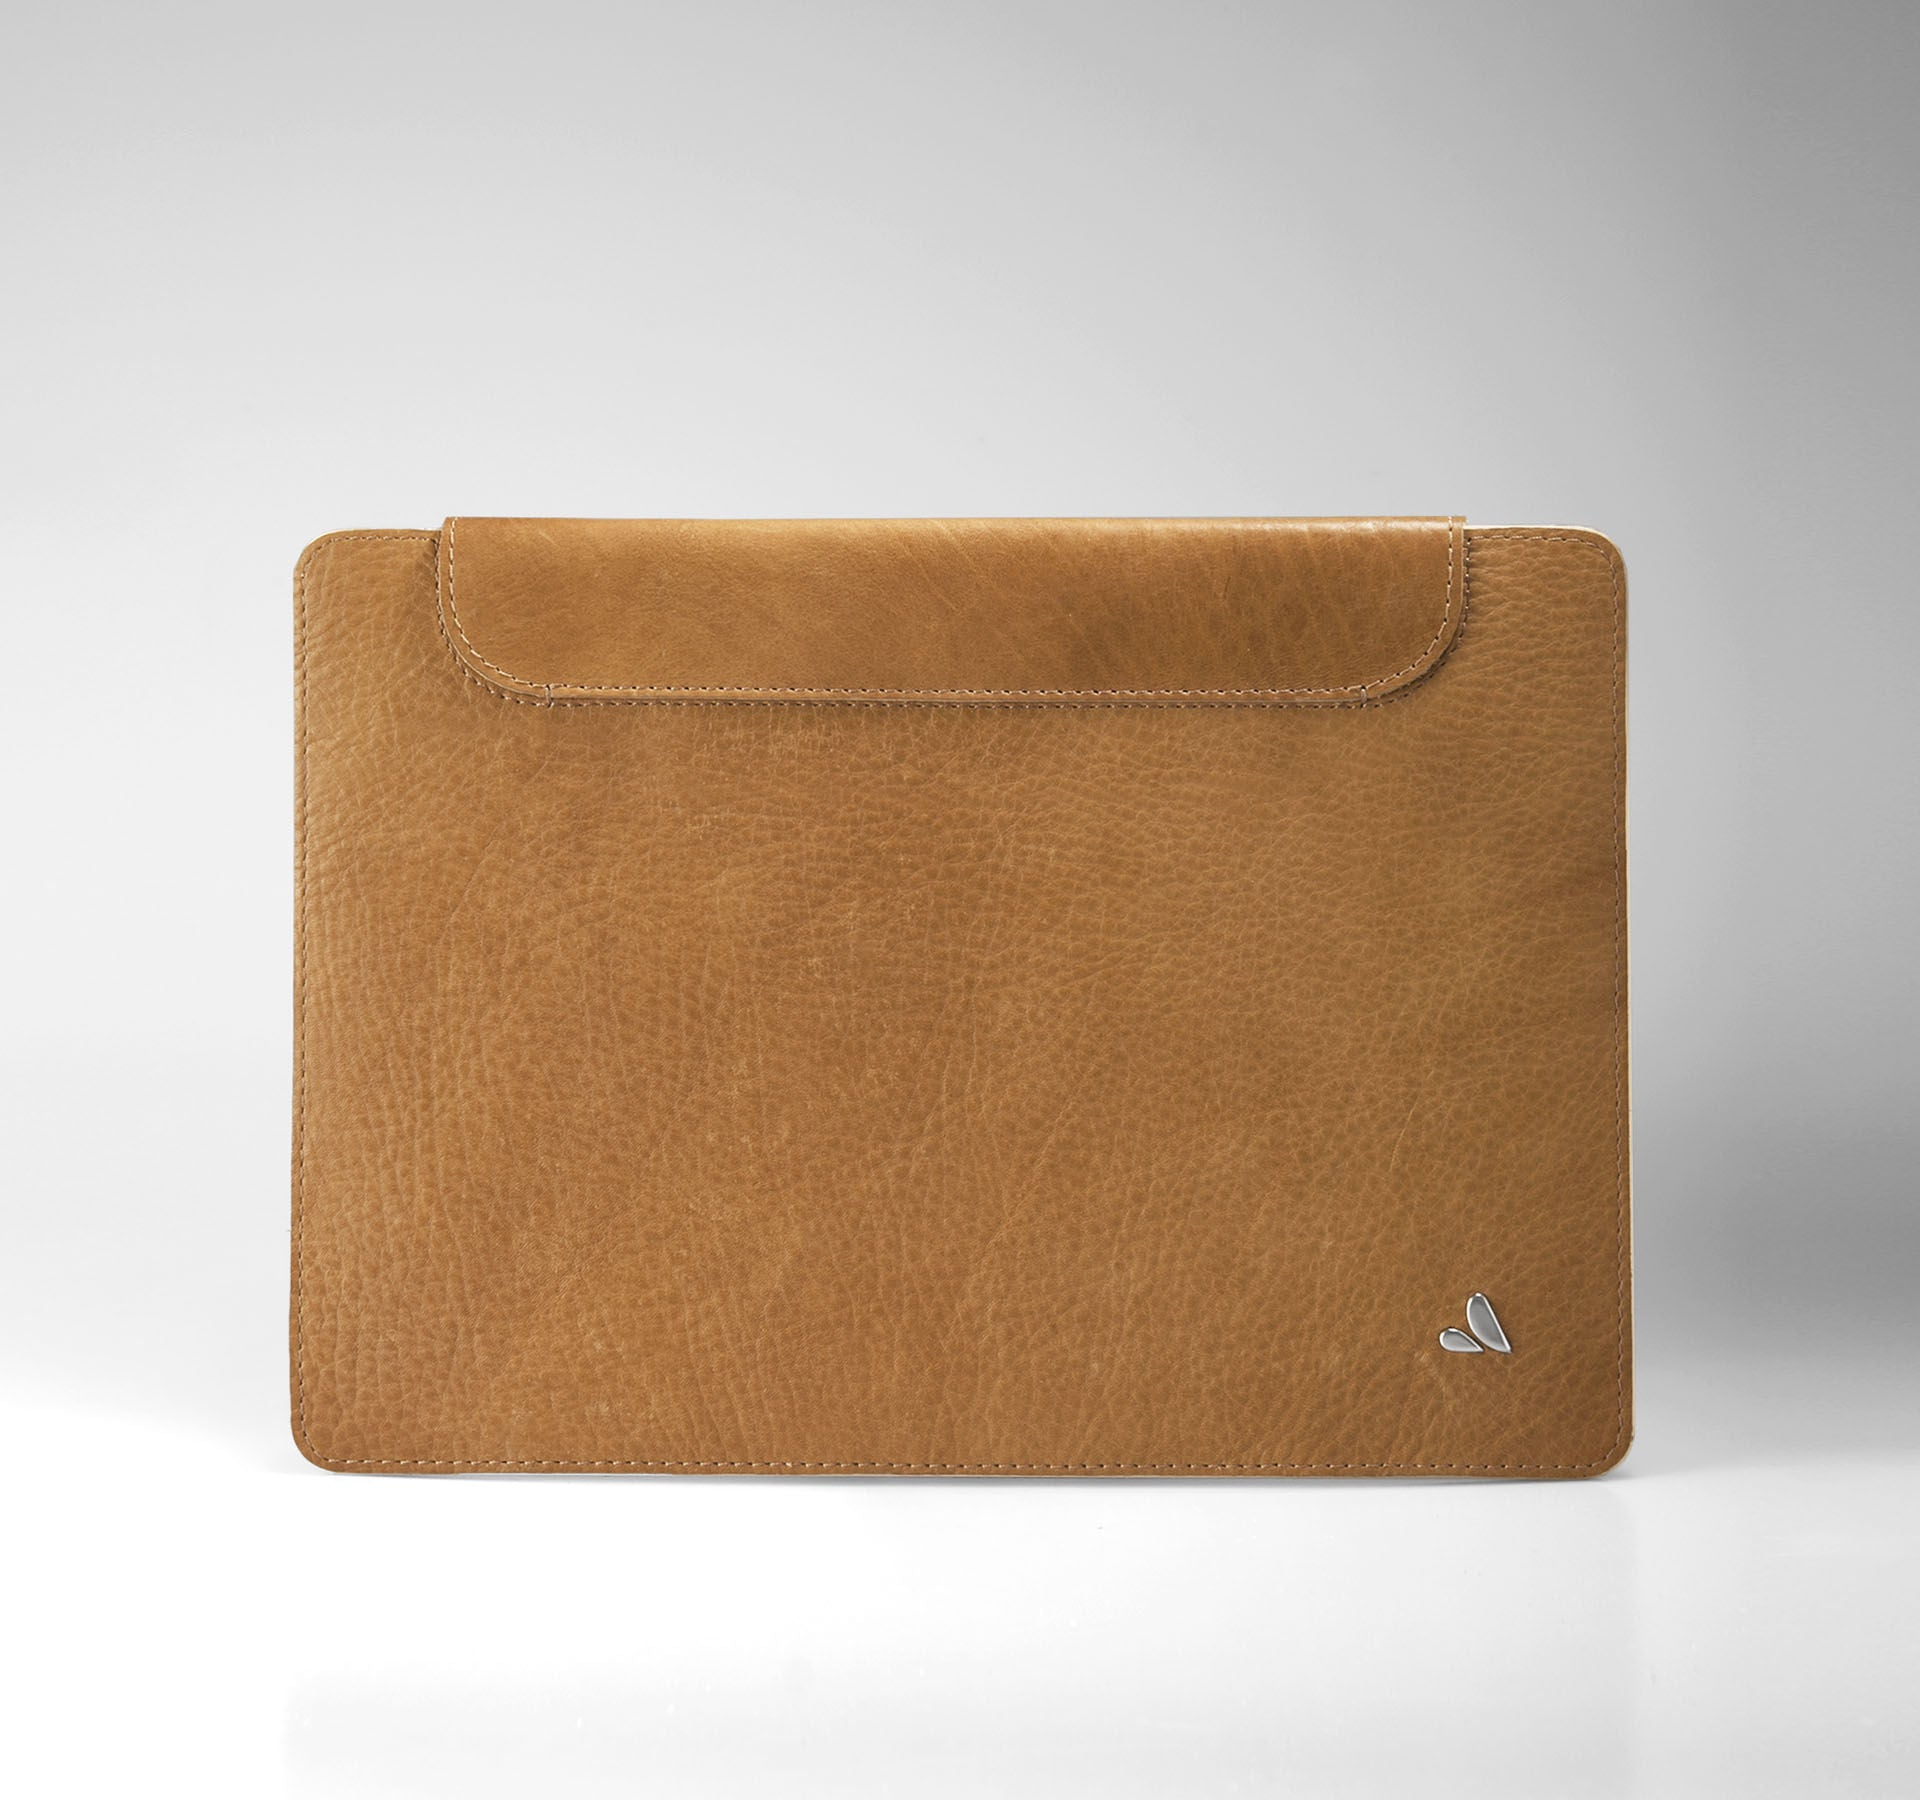 Our all-natural, vegetable-tanned Bridge leather featuring a classic pique pattern adds enhanced texture. The innovative, reusable backing always insures a streamlined fit and will never leave a sticky residue. As one of the slimmest premium leather cases for the MacBook 12'' on the market today, the Leather Wrap Cover is a triumph of tradition and innovation.